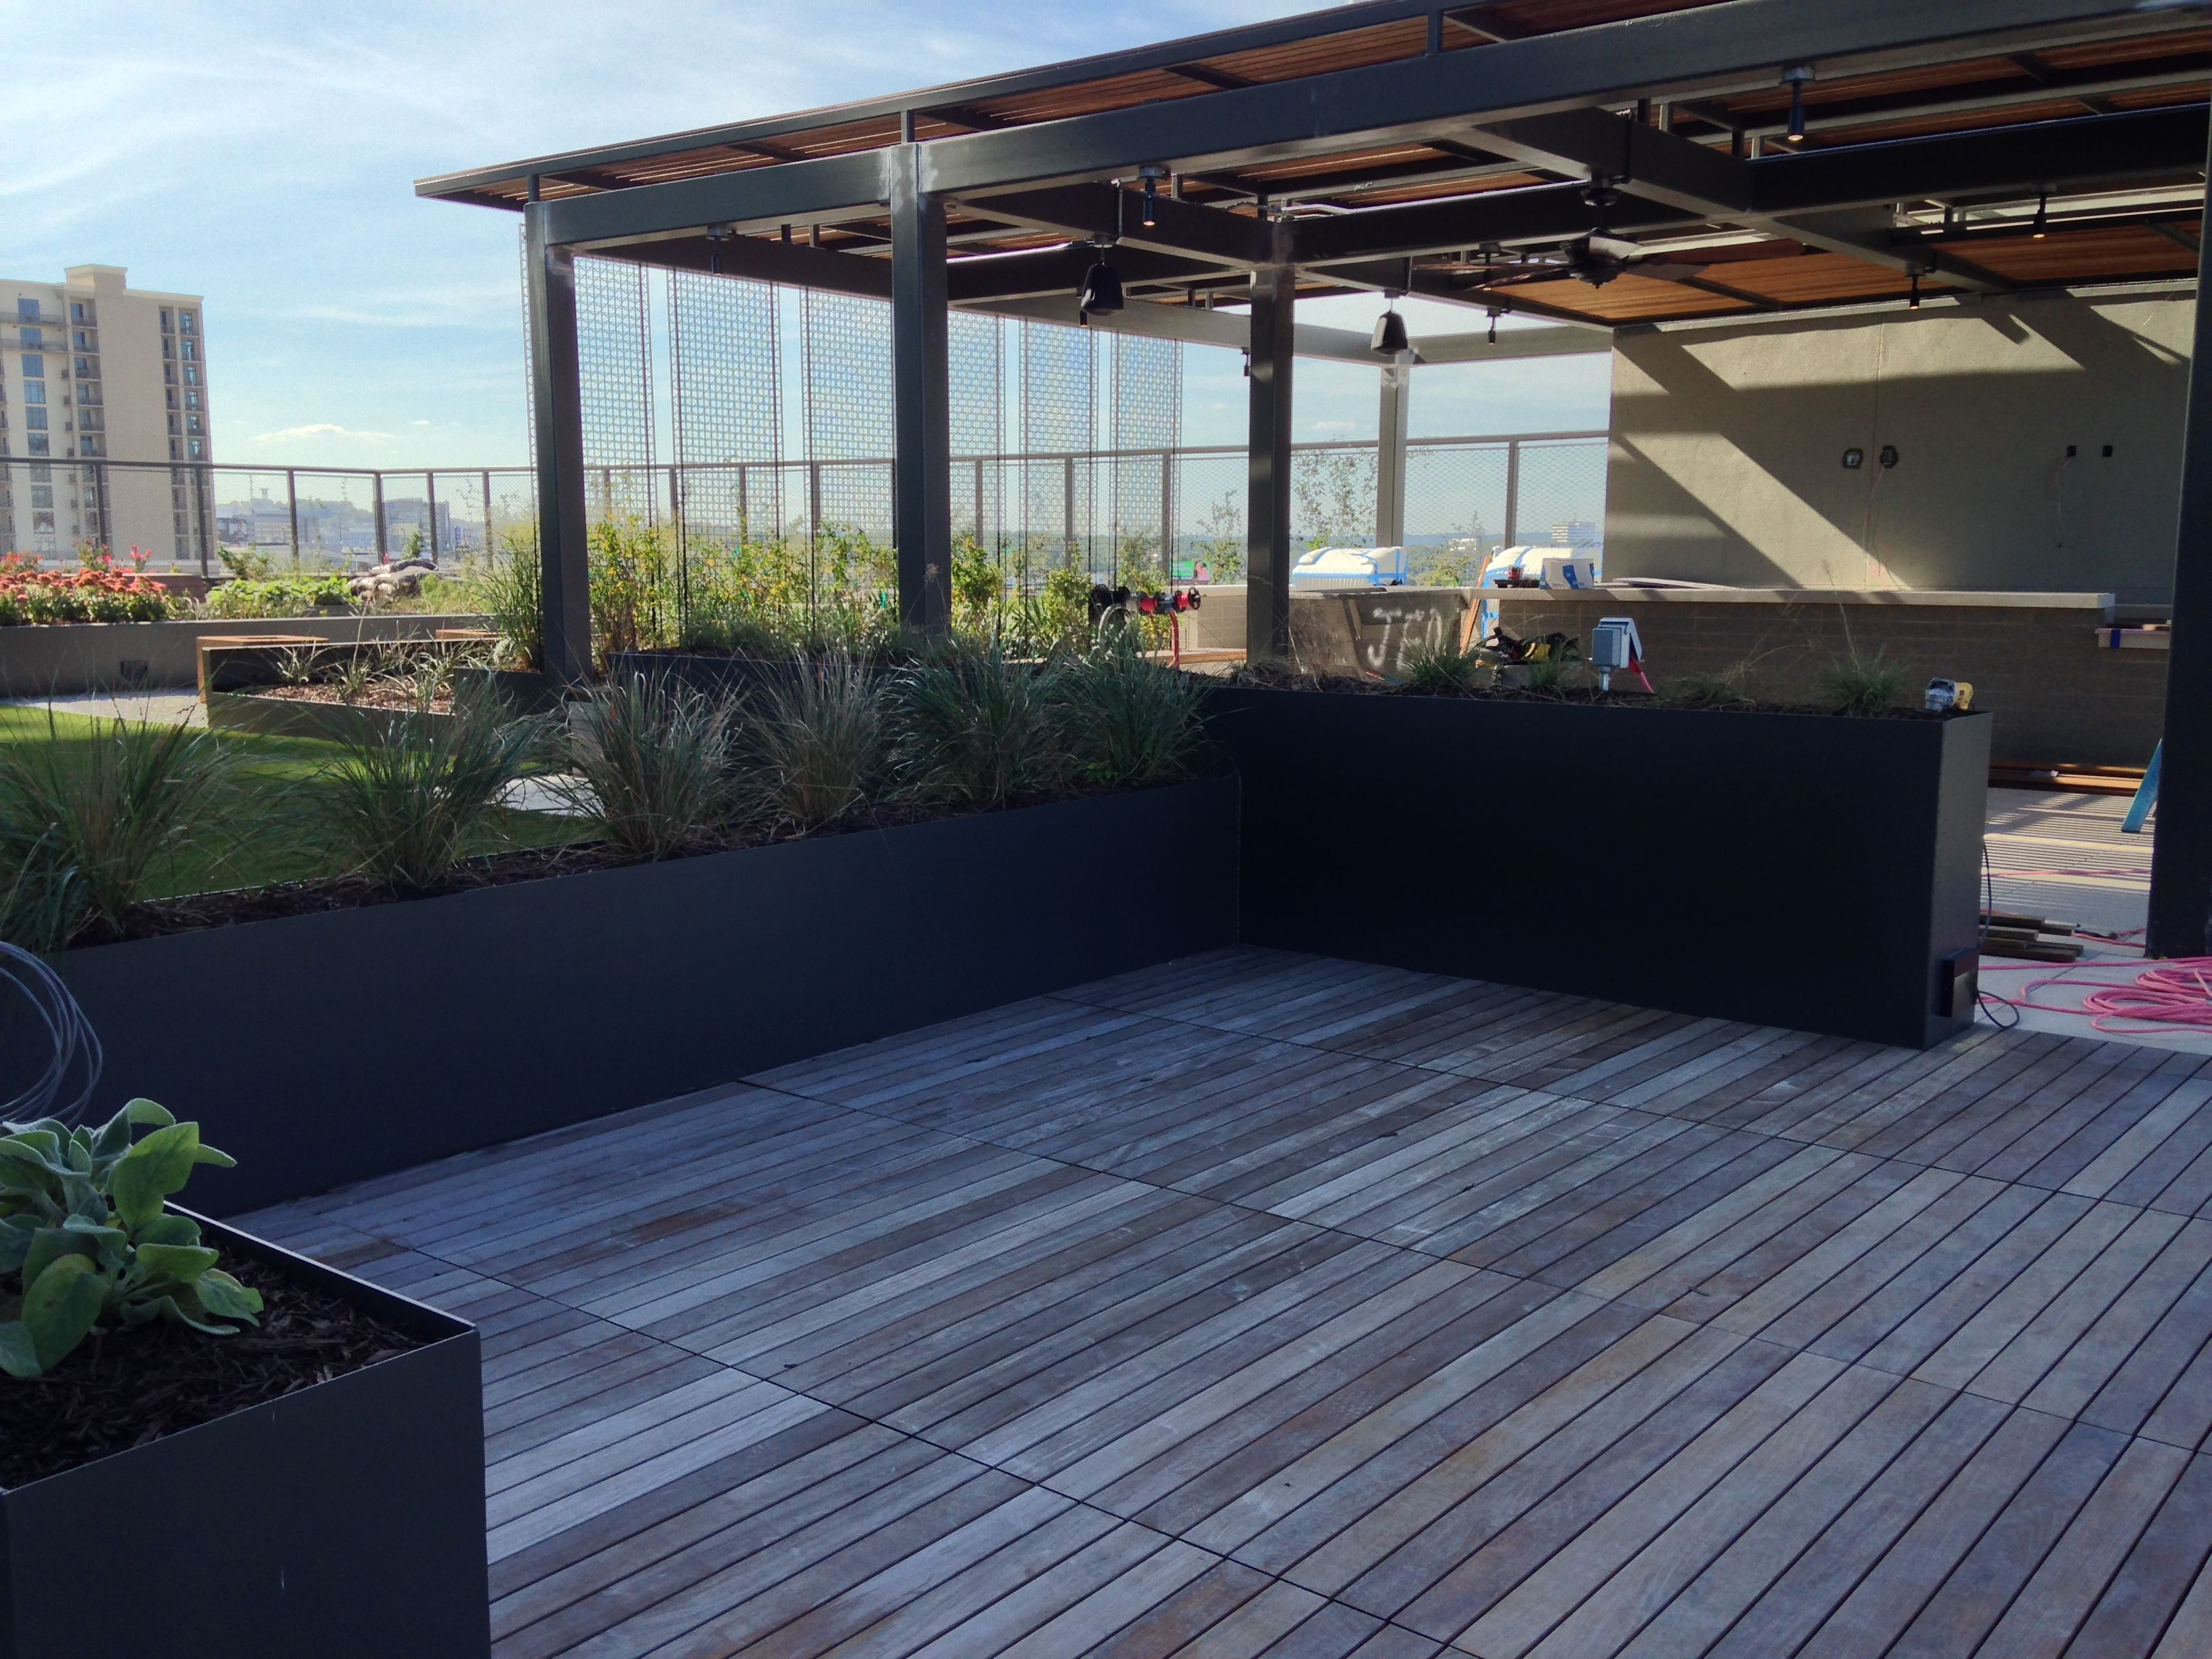 Nashville Apartment Rooftop Wows With Bison Deck Tiles